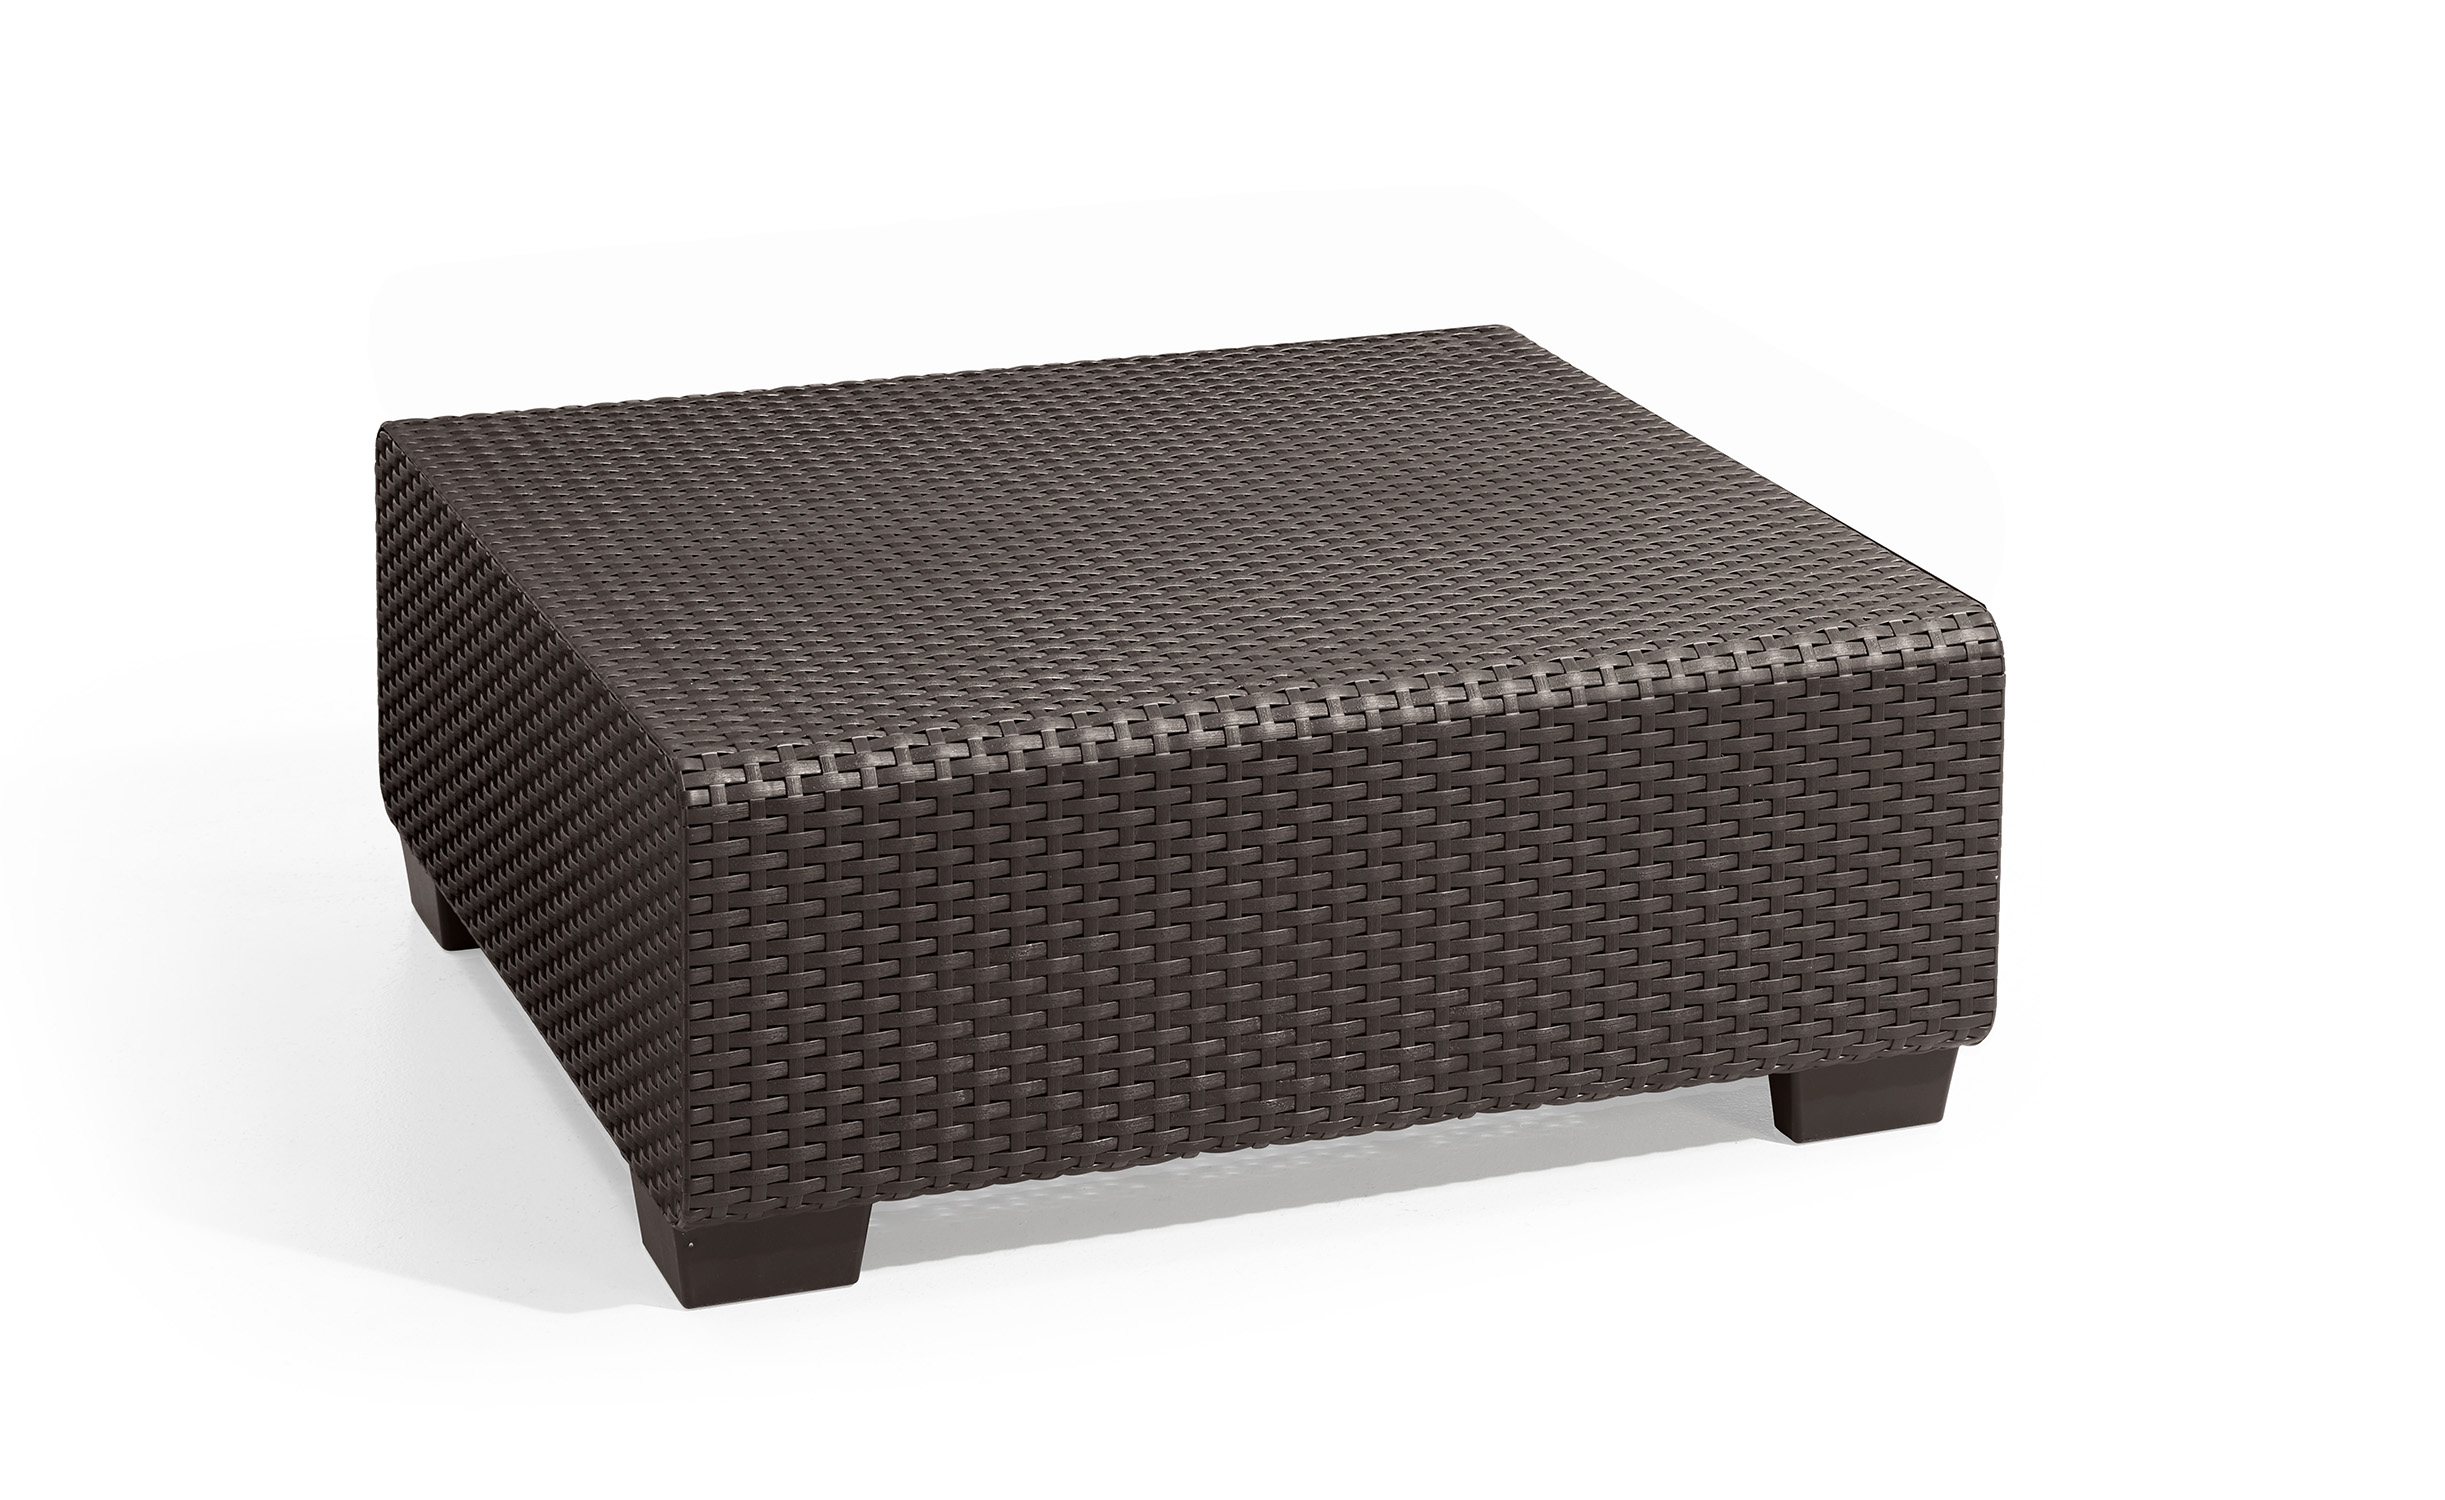 Resin Garden Furniture Keter Sapporo Coffee Table Brown, Rattan Resin Patio Furniture - Walmart.com